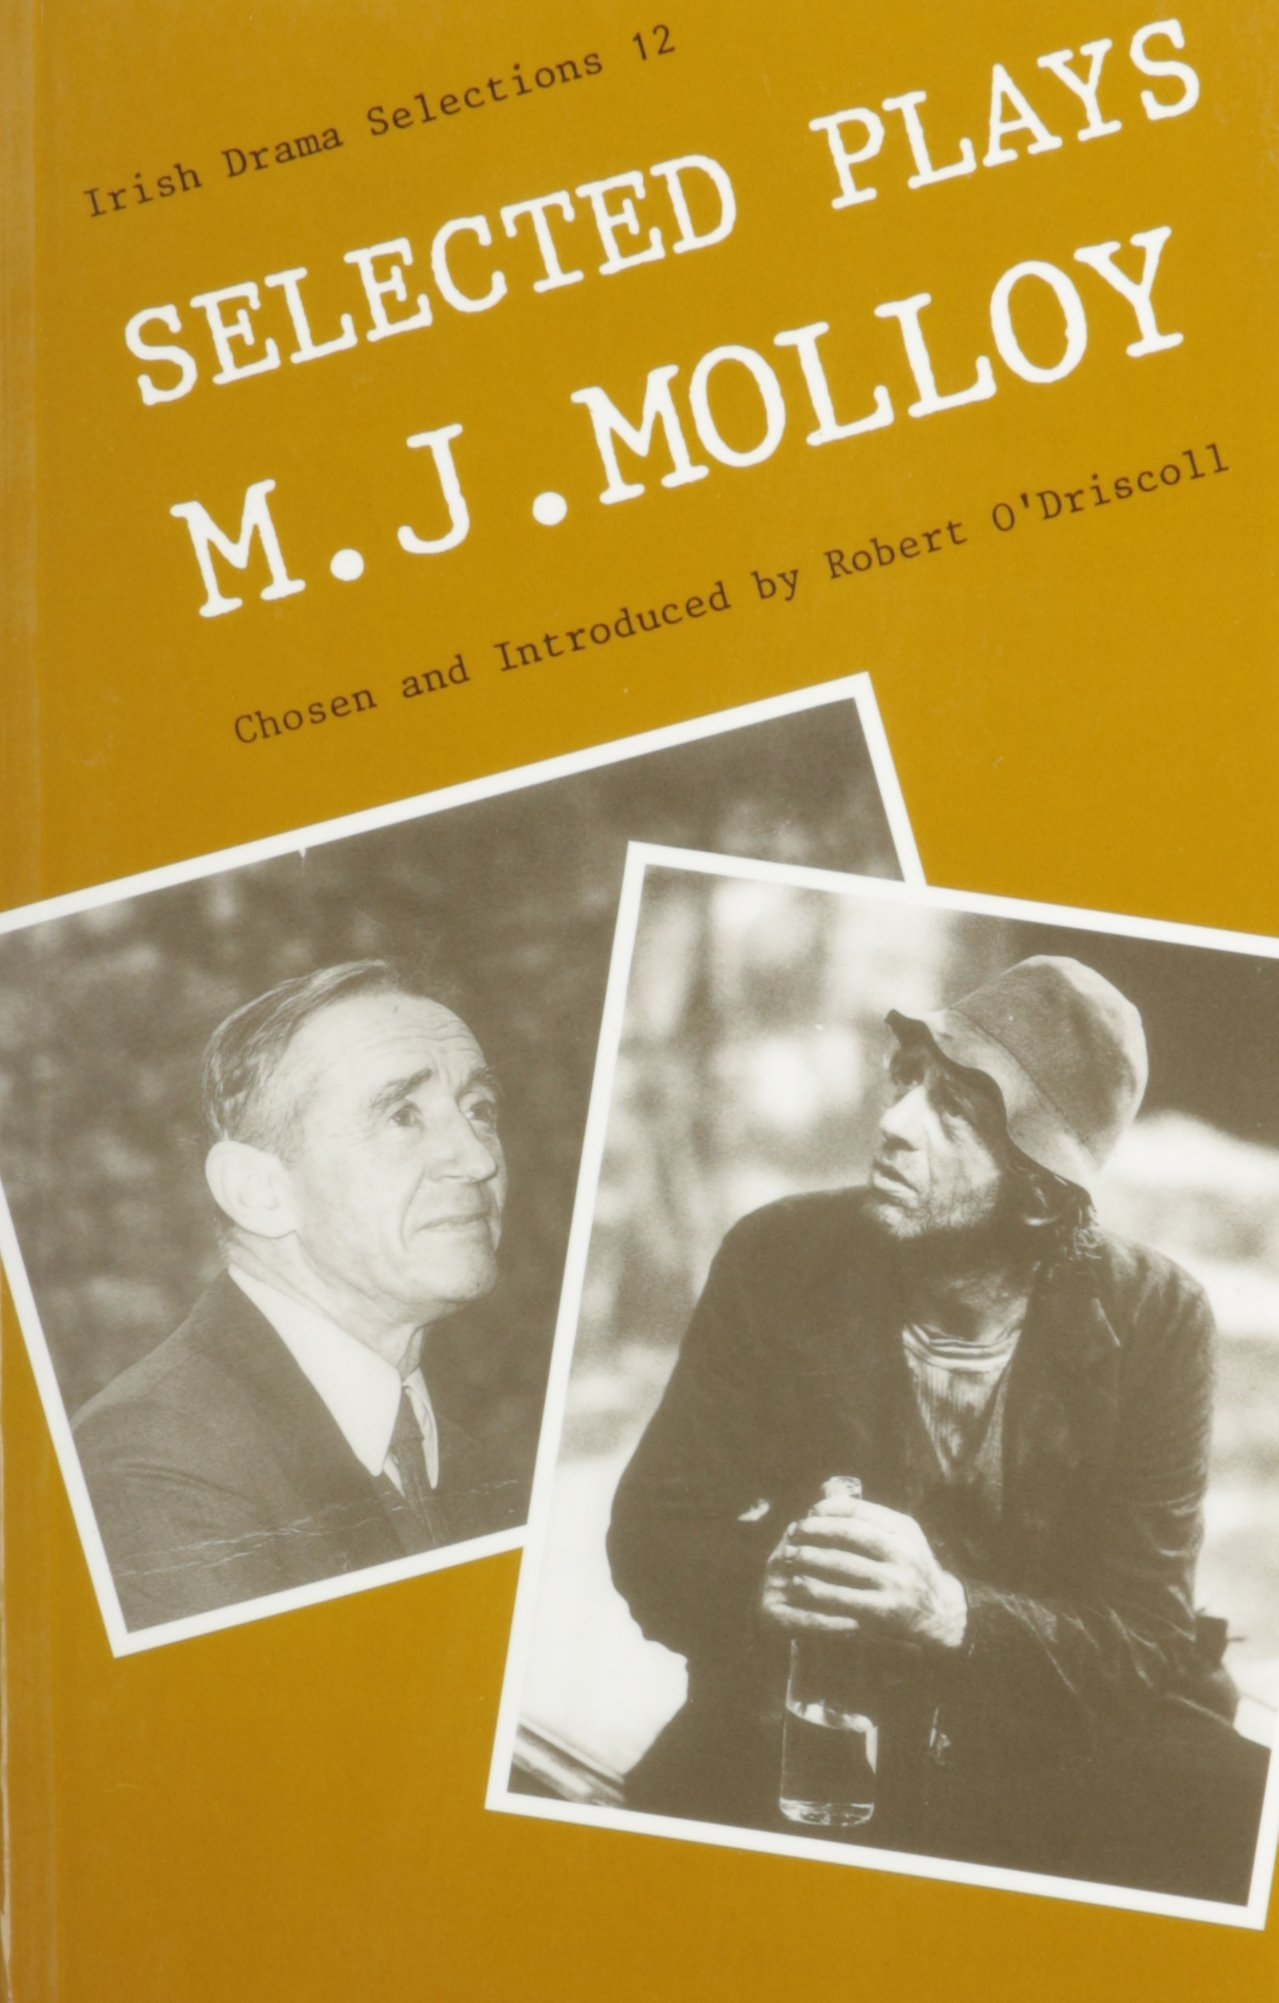 Selected Plays book written by M. J. Molloy